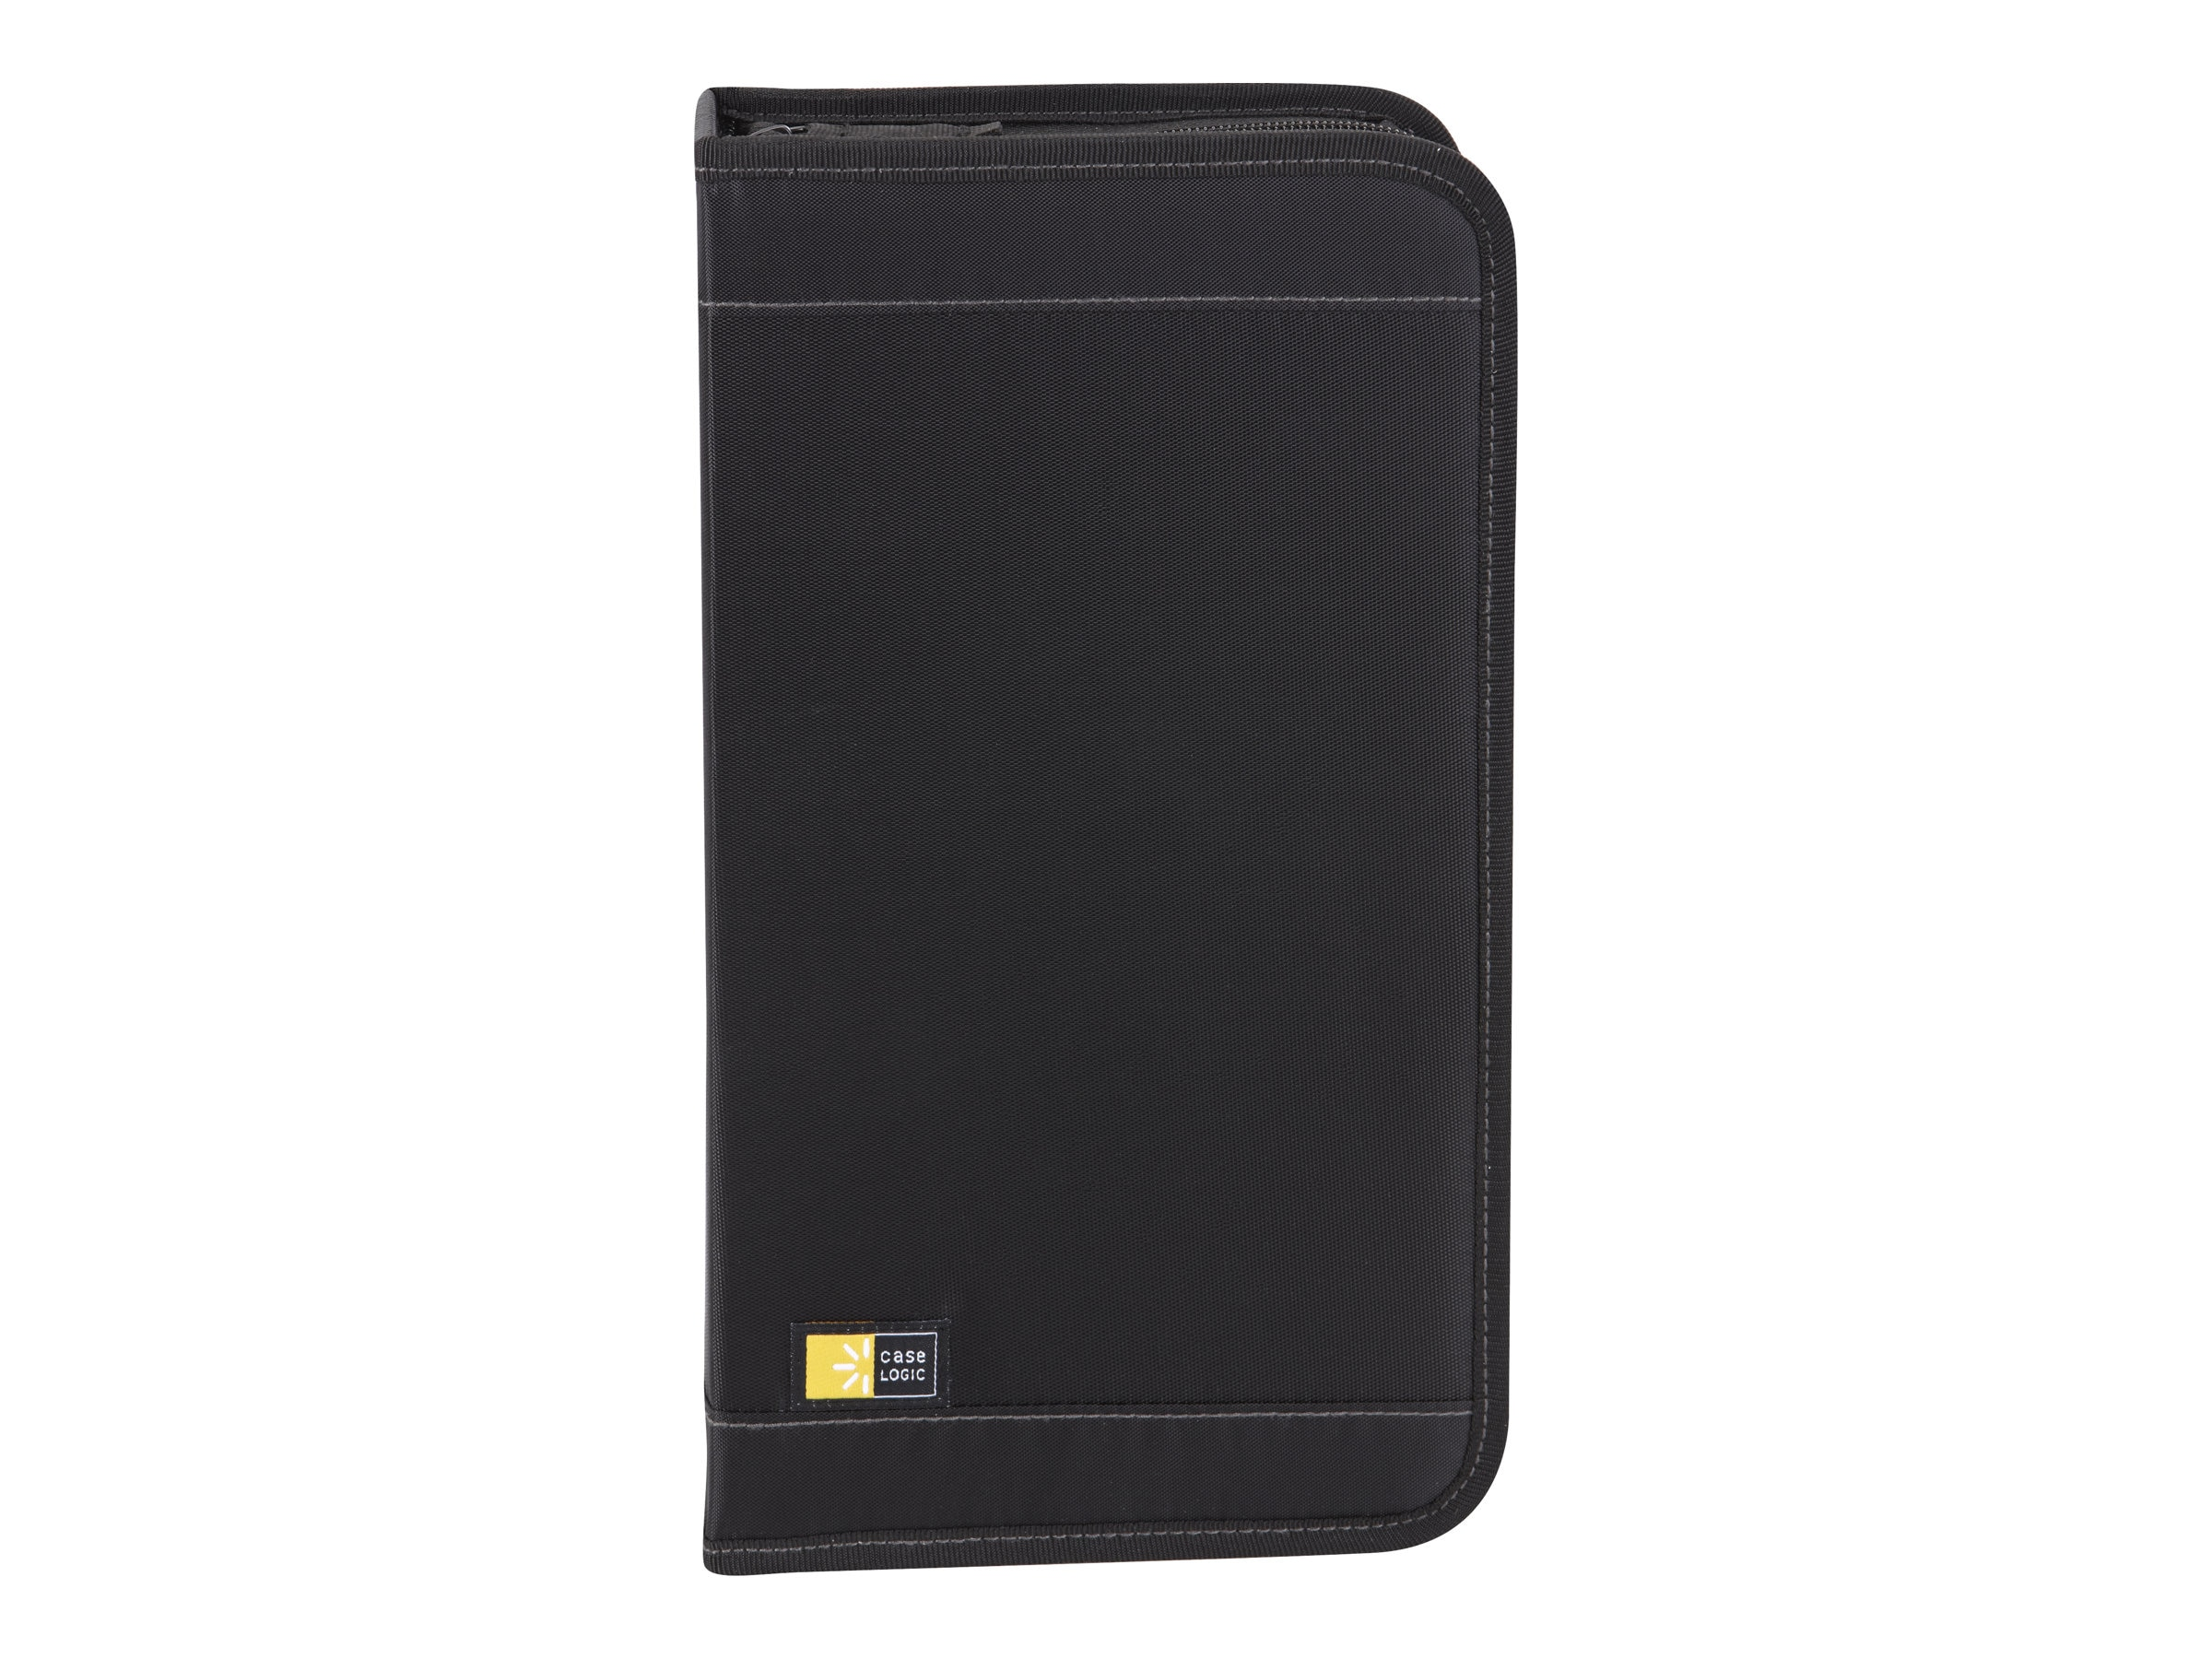 Case Logic CD Wallet; 64 Disc Capacity - Black Nylon, CDW64, 223264, Media Storage Cases